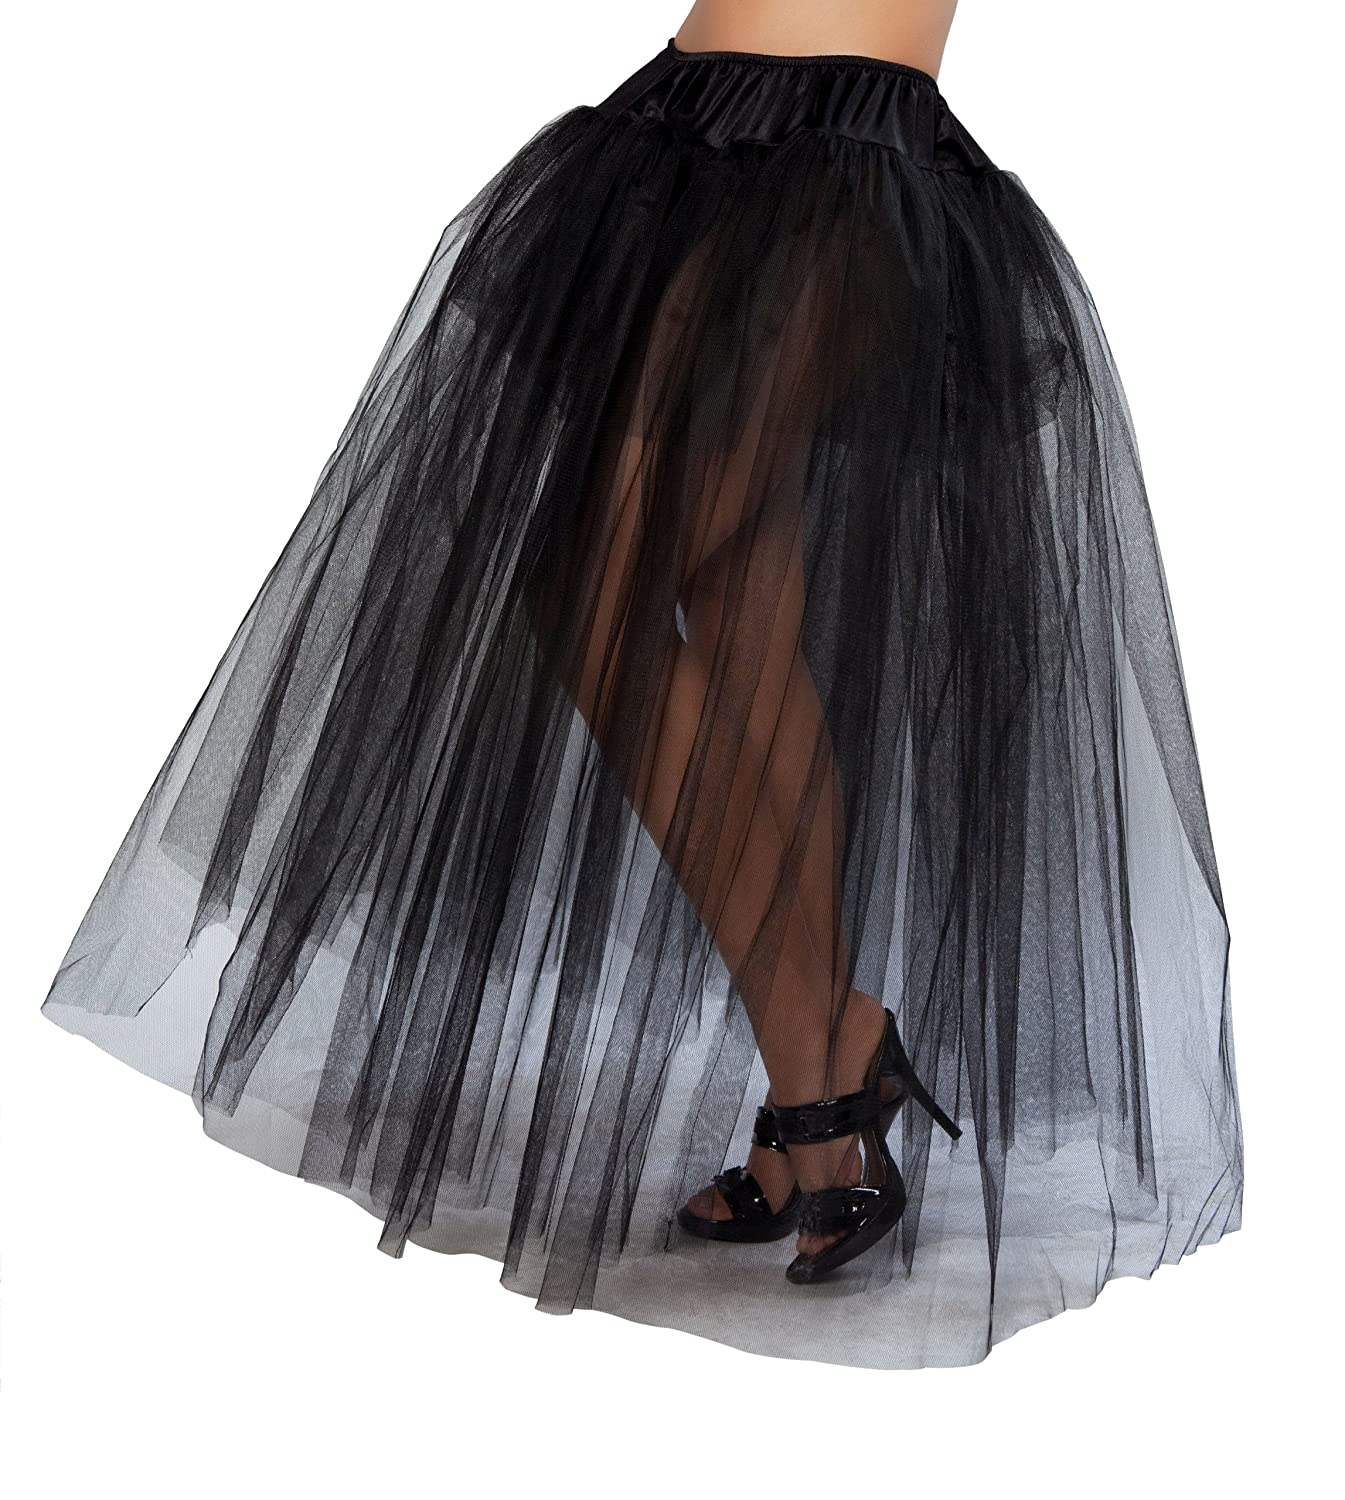 amazoncom roma costume full length petticoat costume black one size clothing - Halloween Petticoat